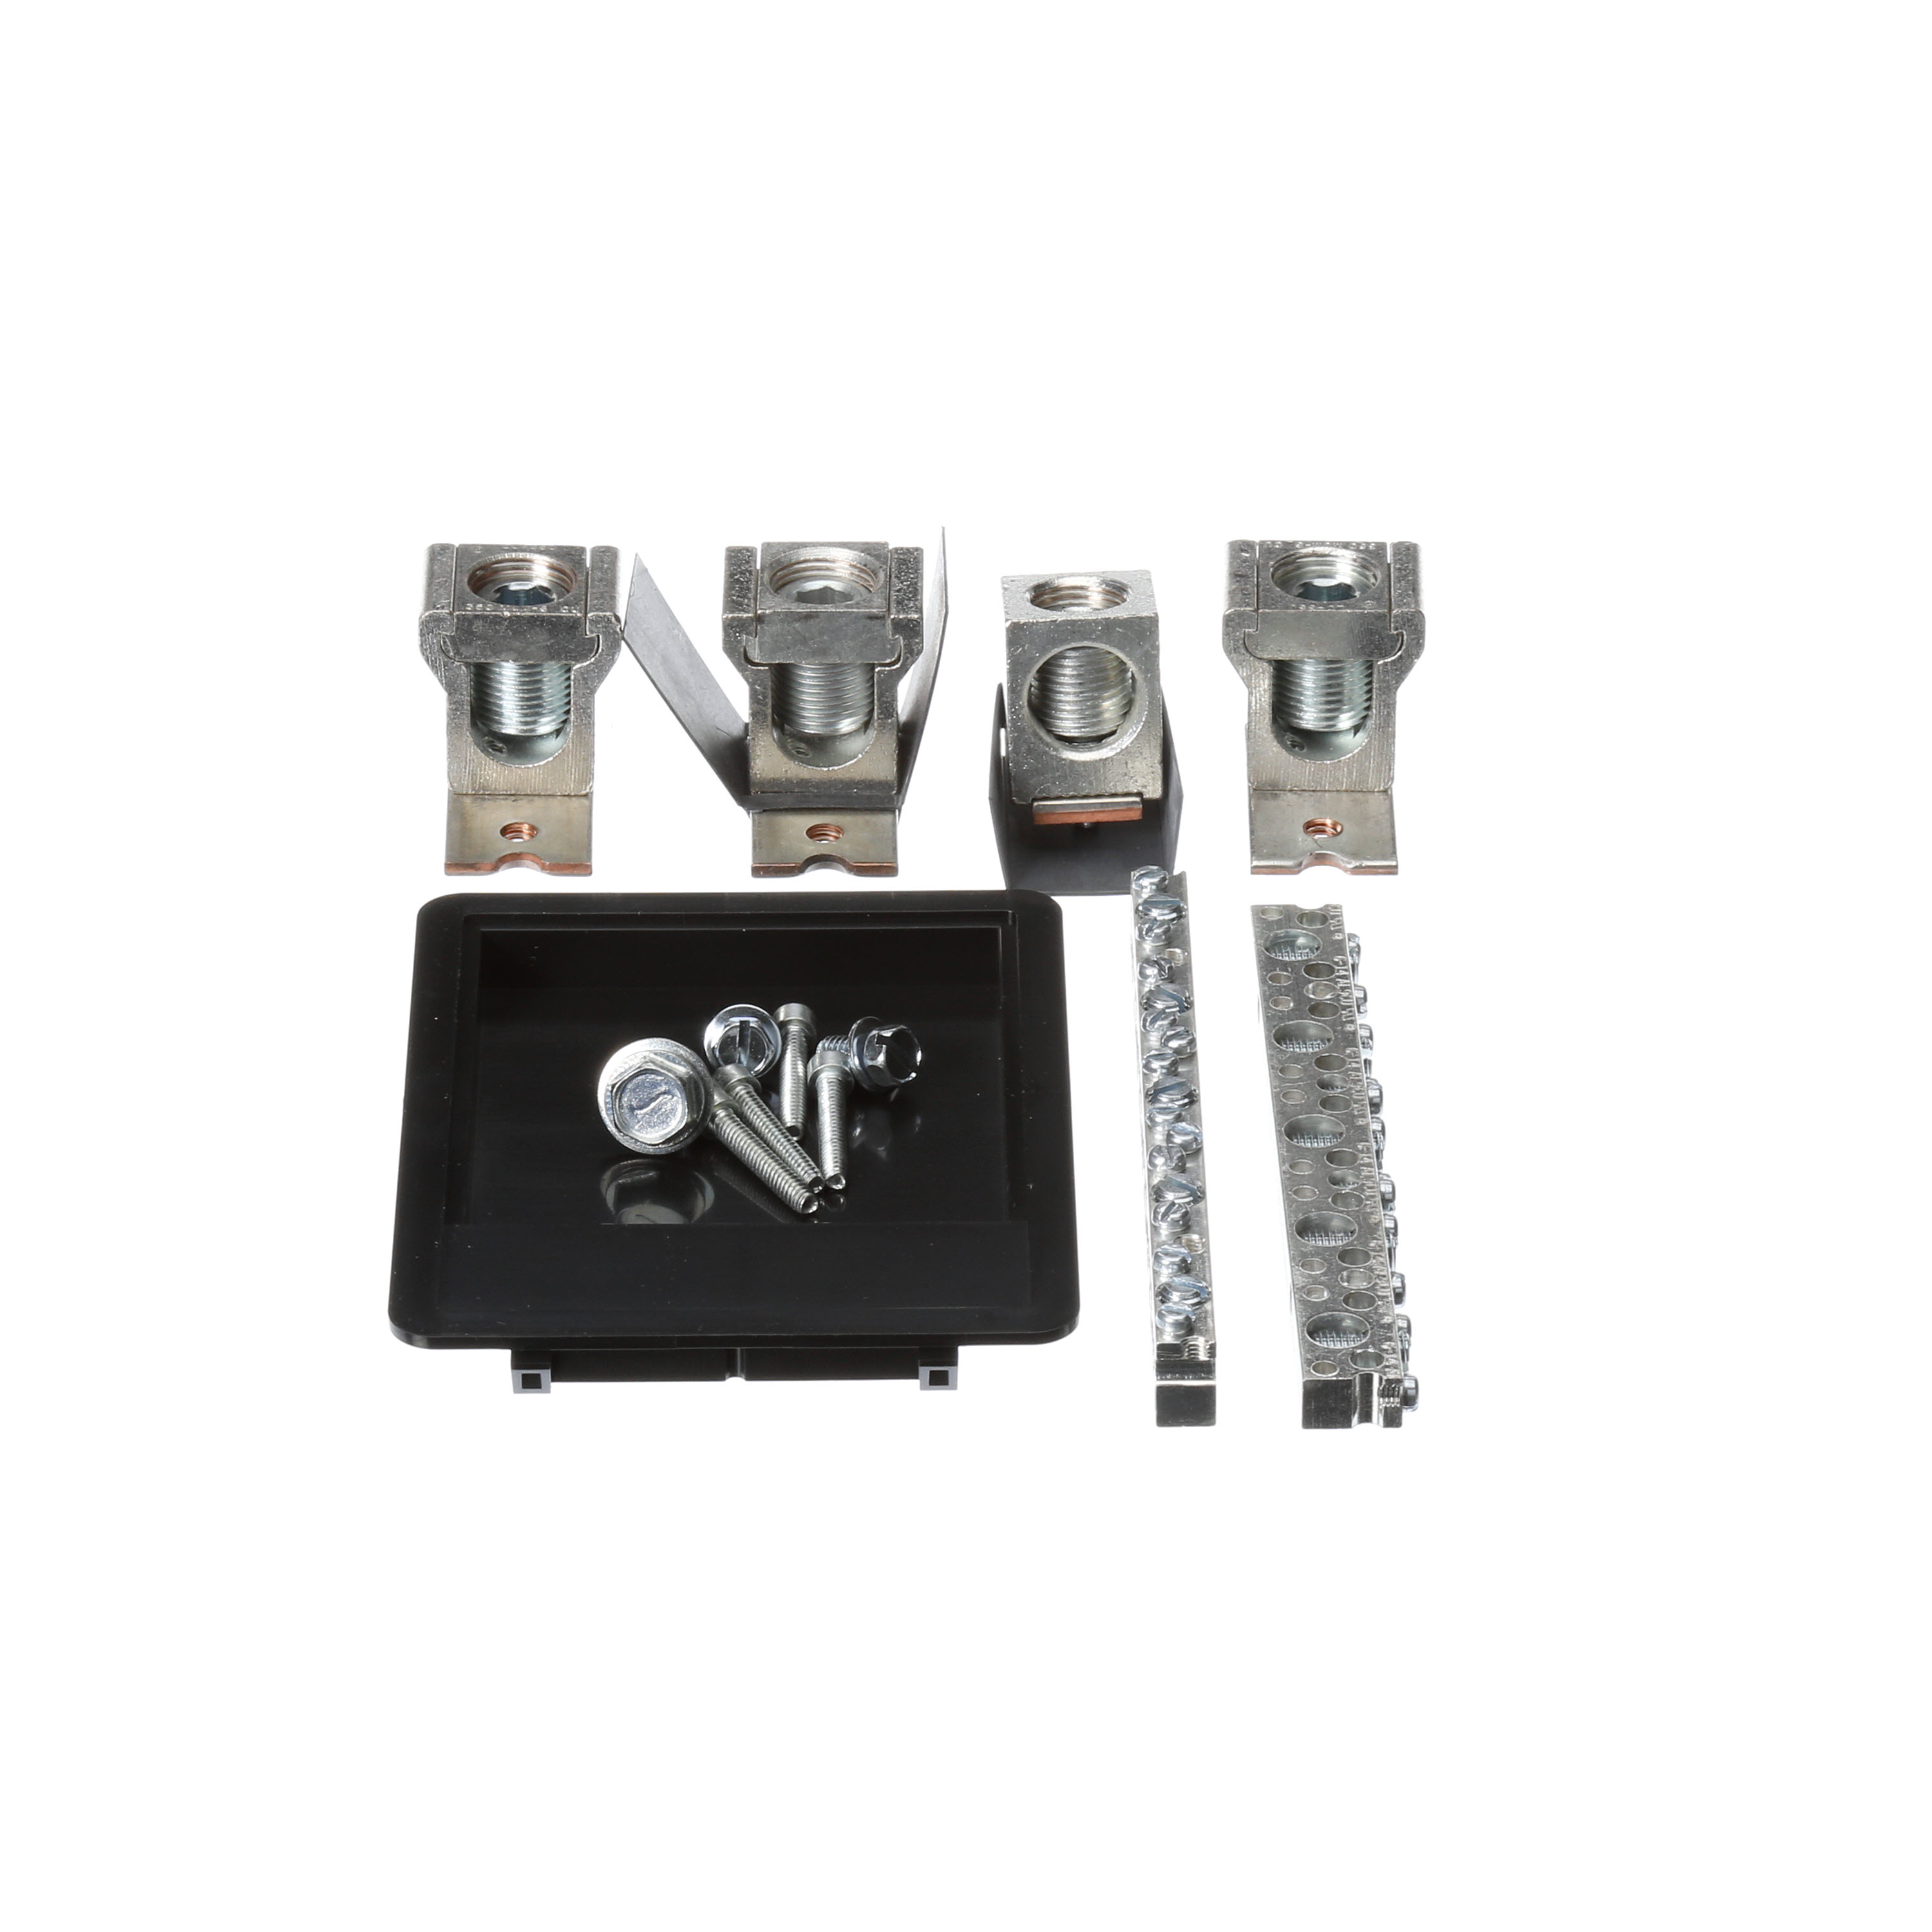 SIE MLKC3A SIE MAIN LUG KIT 250A 3PH PANELBOARD